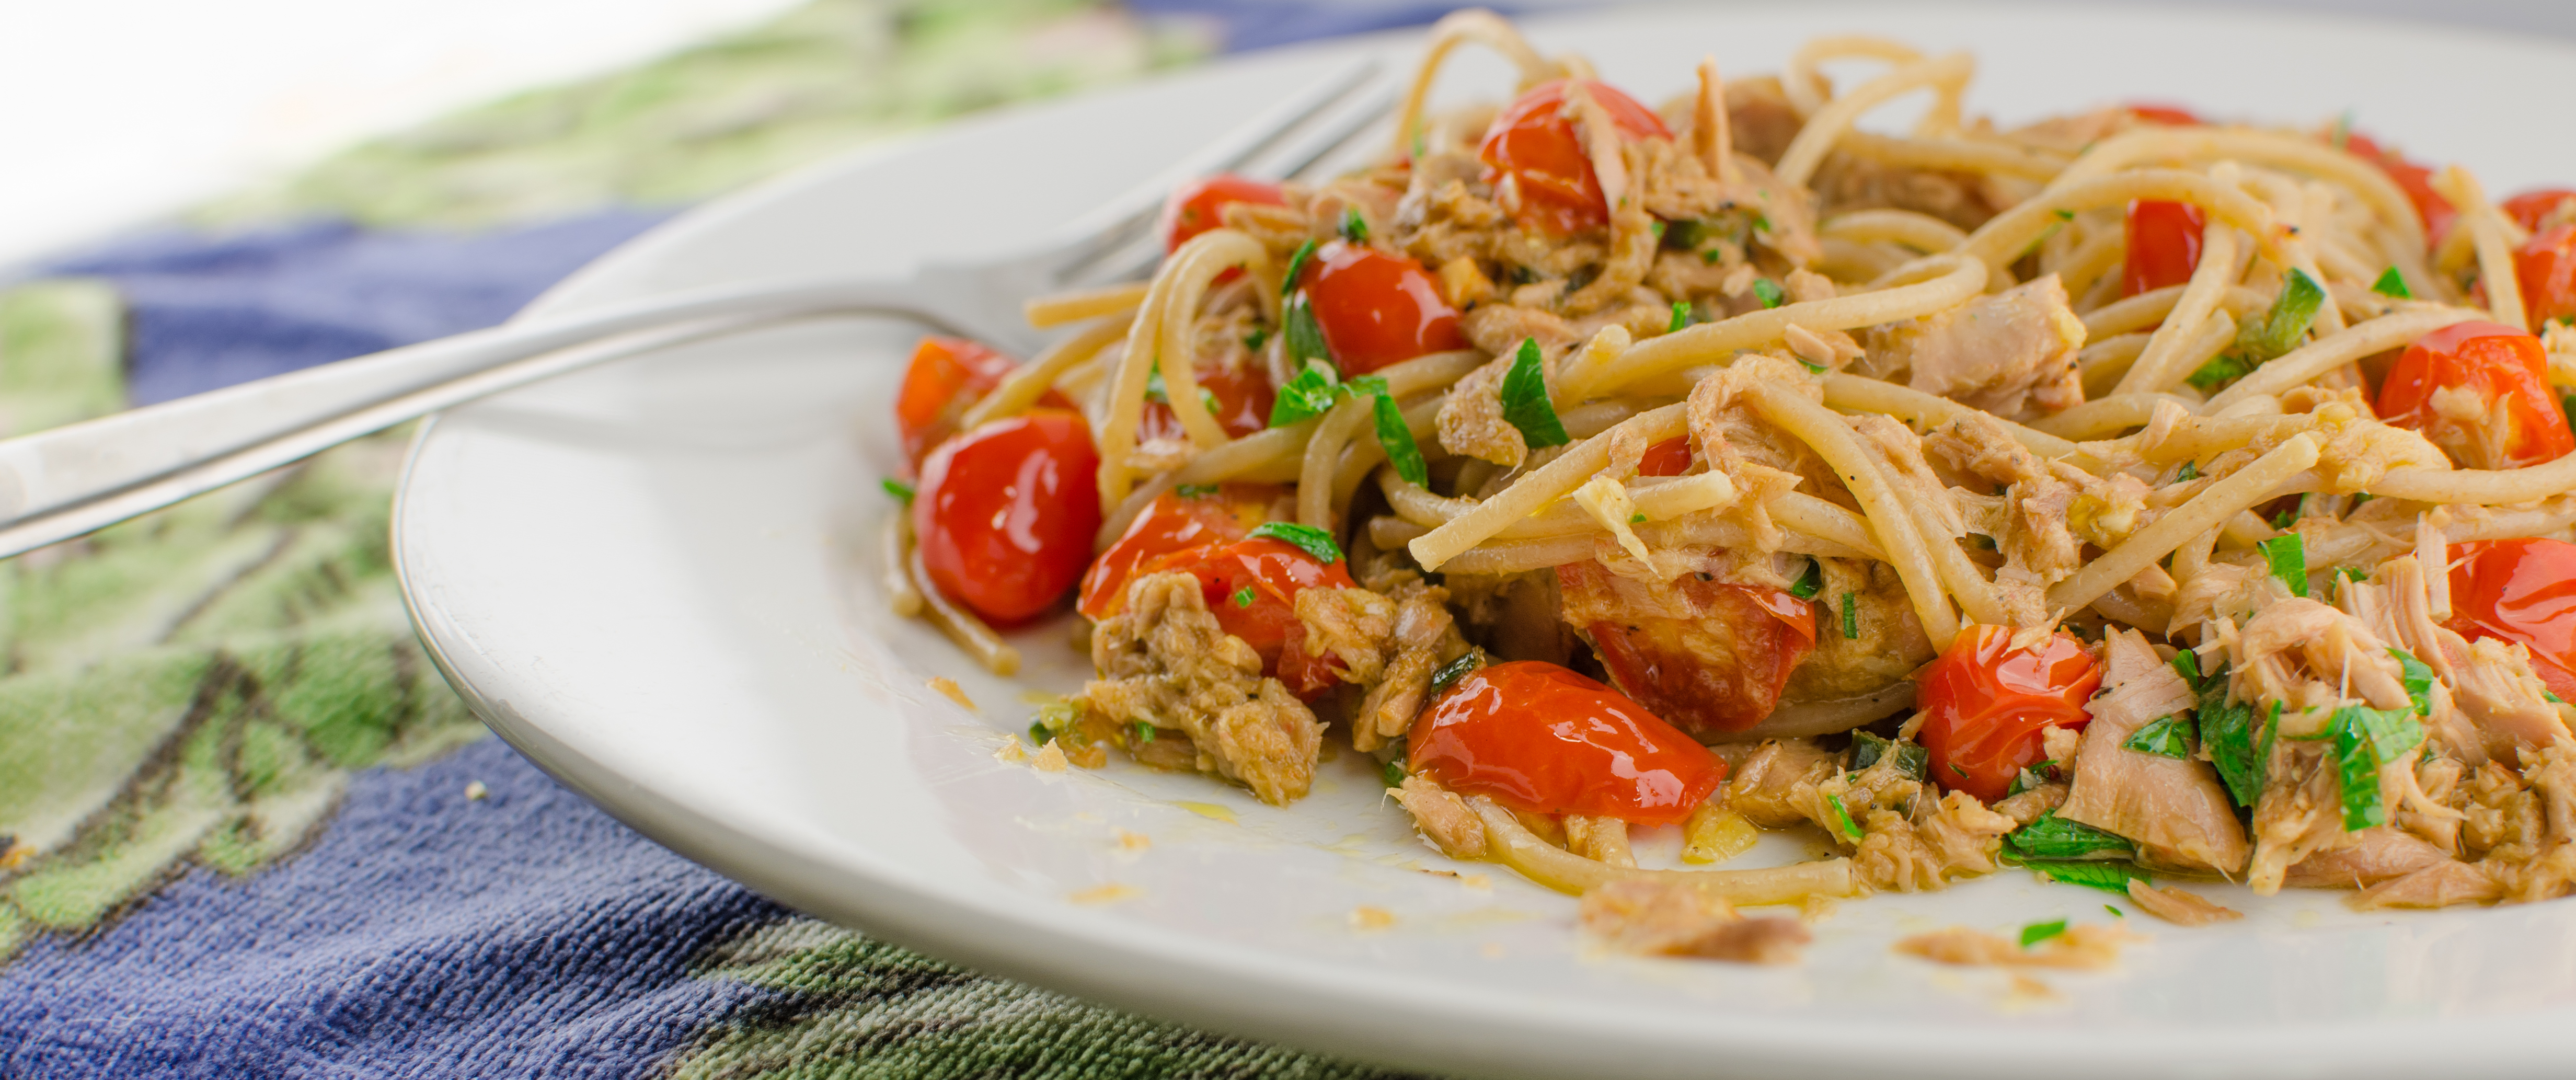 How to Cook Canned Tuna images